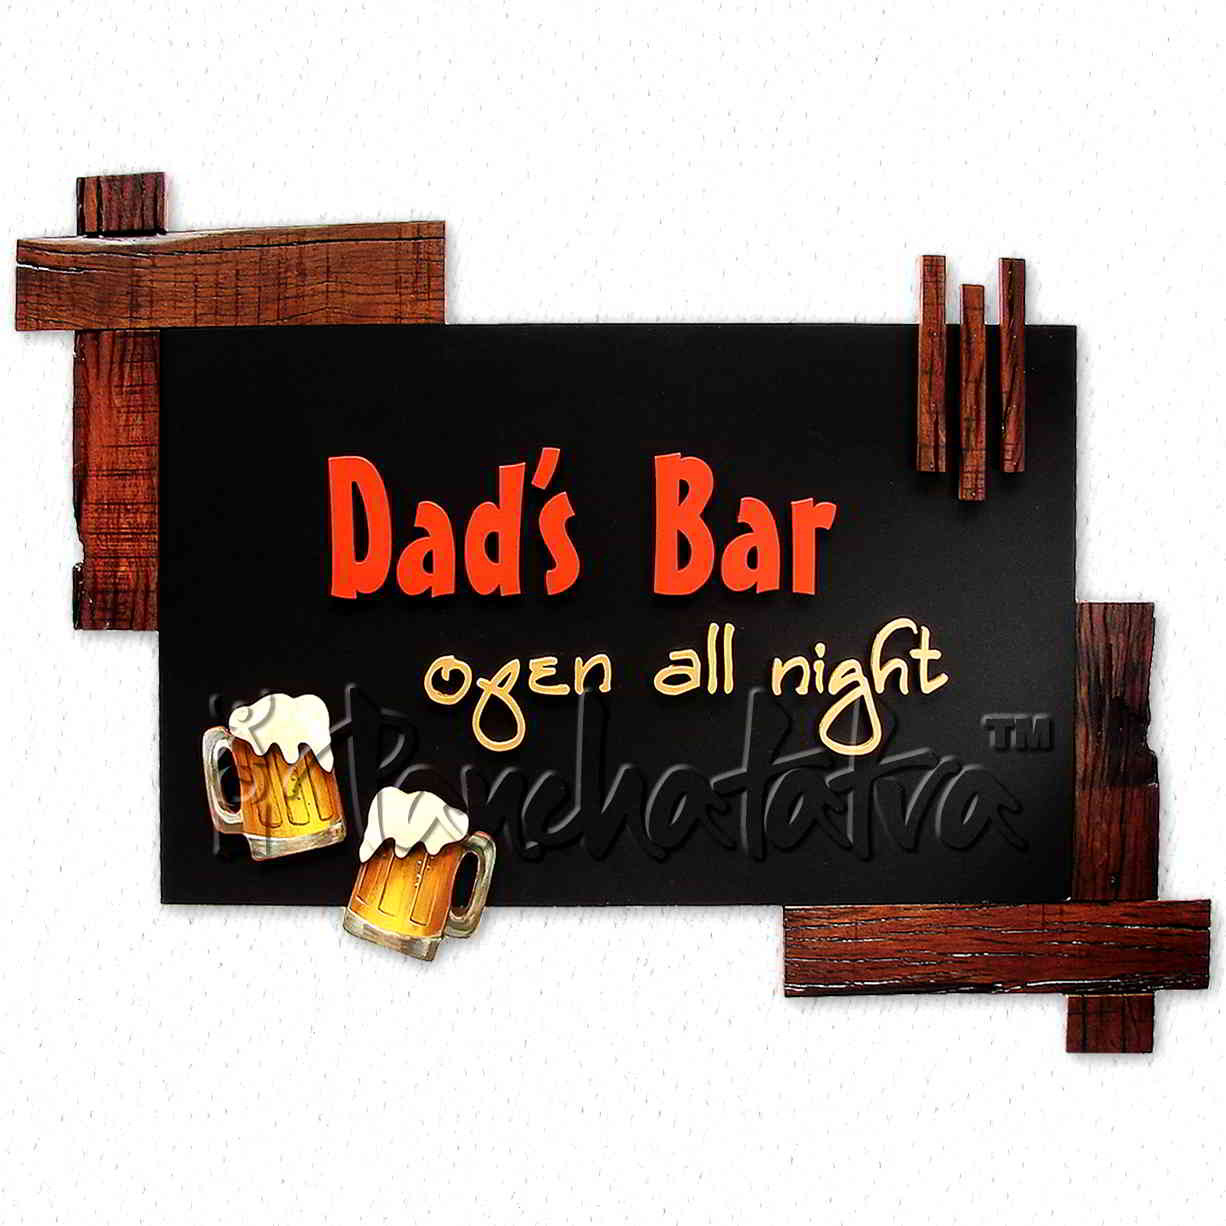 Handmade Wall Decor Buy Rustic Handmade Wall Decoration Art for Dad S Bar